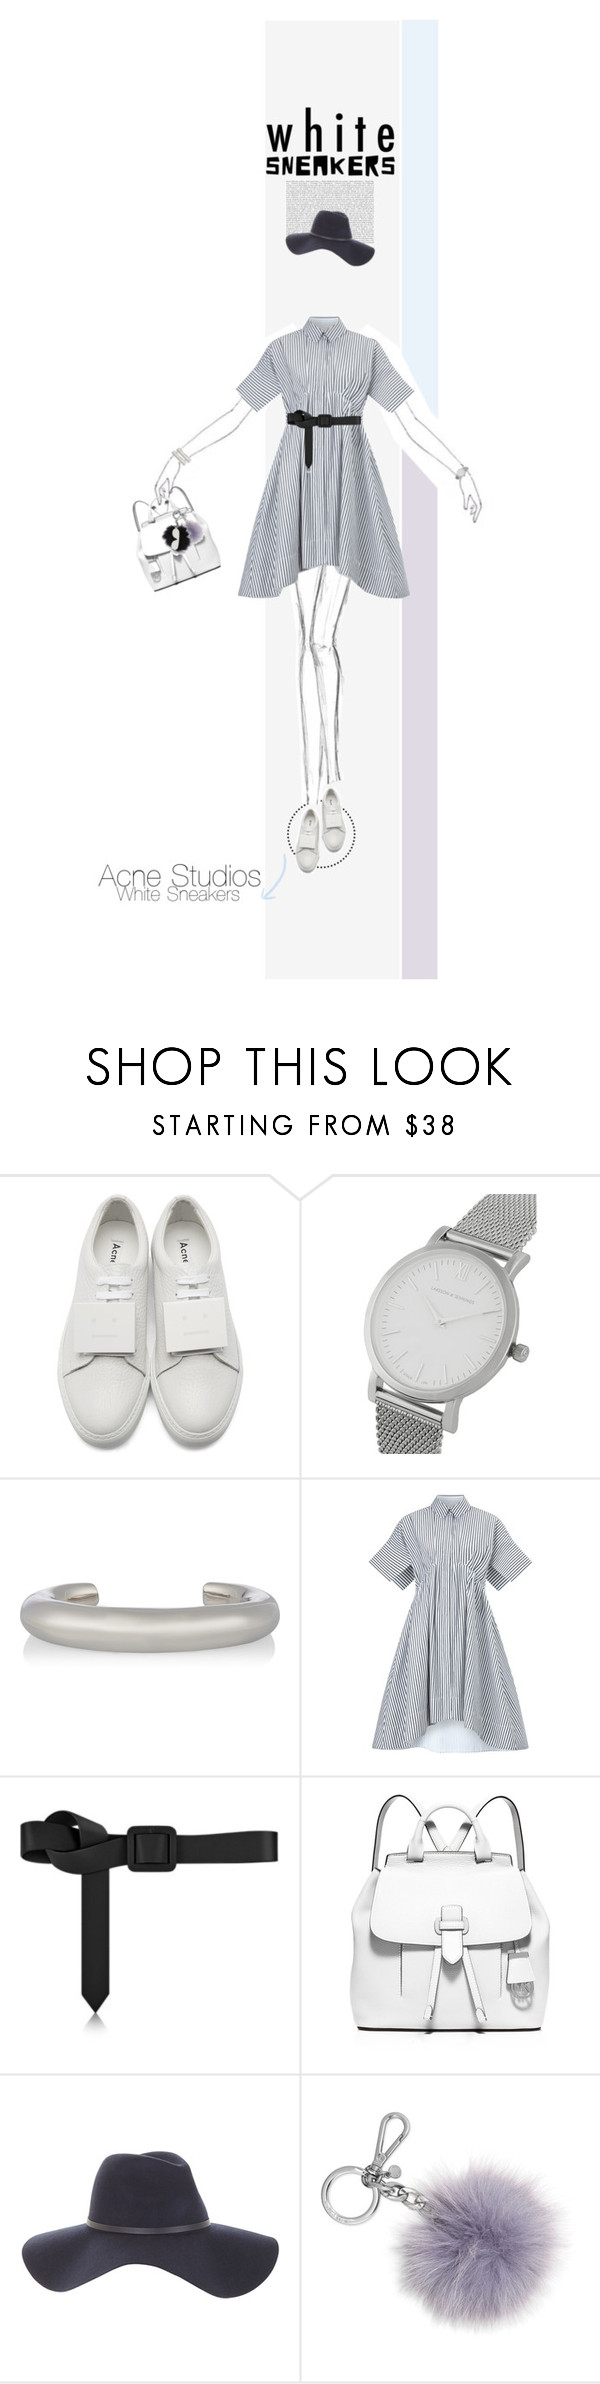 """White Sneakers"" by poison-iivy ❤ liked on Polyvore featuring Acne Studios, Larsson & Jennings, Jennifer Fisher, Victoria, Victoria Beckham, MICHAEL Michael Kors, BCBGMAXAZRIA, Michael Kors and whitesneakers"